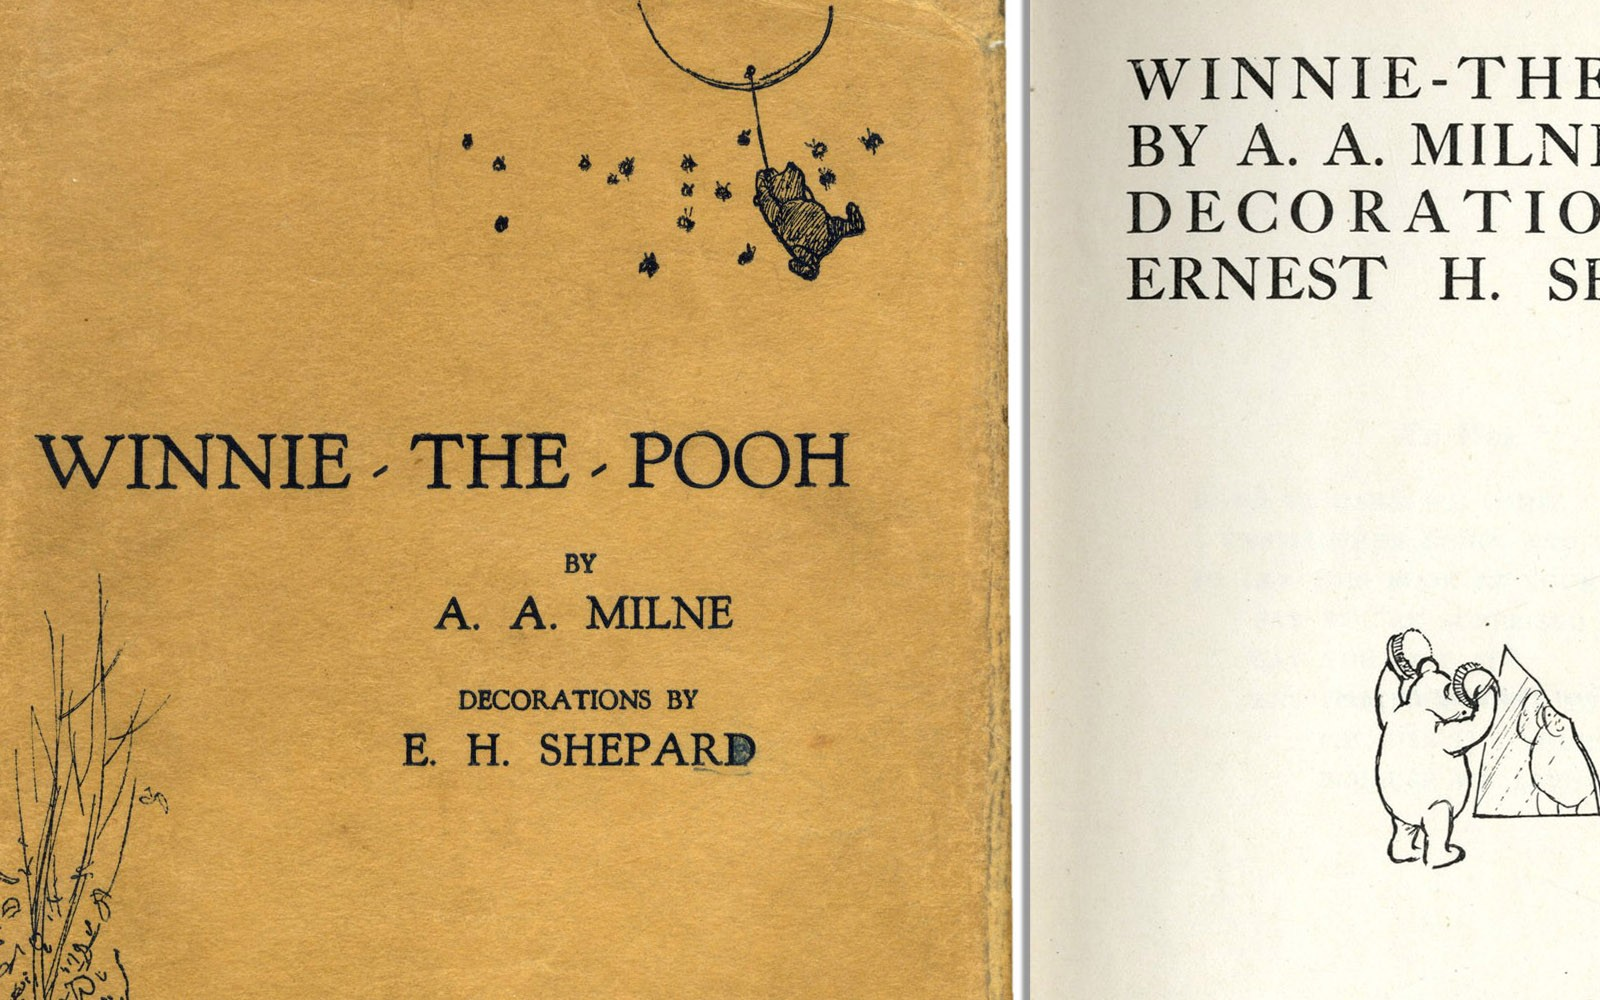 Quotes About Change In Life 30 Surprisingly Insightful Winnie The Pooh Quotes That Will Change